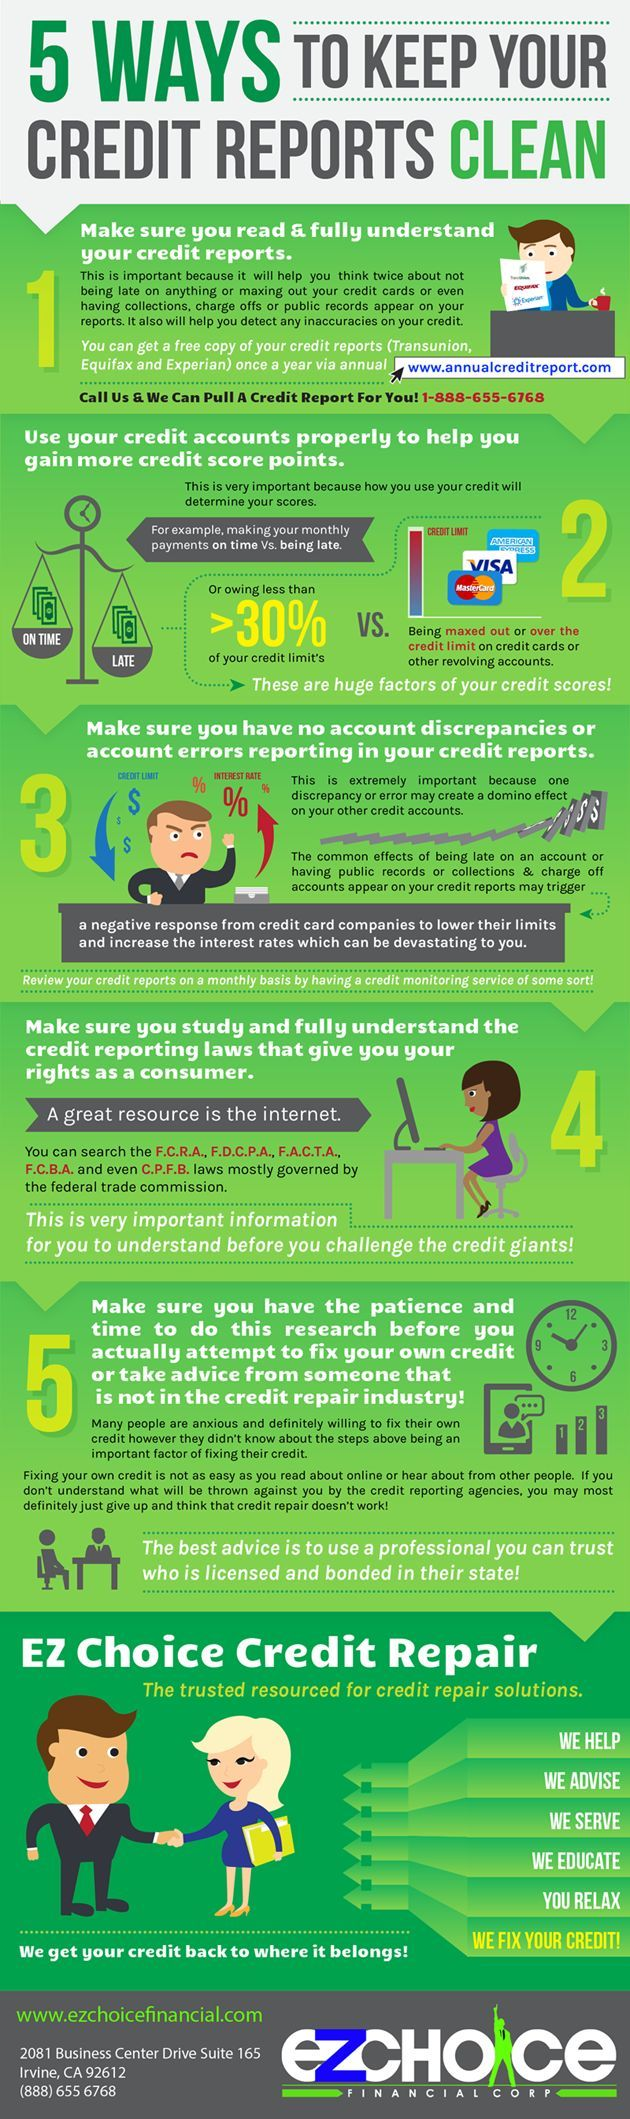 ez-choice-credit-repair-infographic-5-ways-to-keep-your-credit-reports-clean – Paige Knudsen